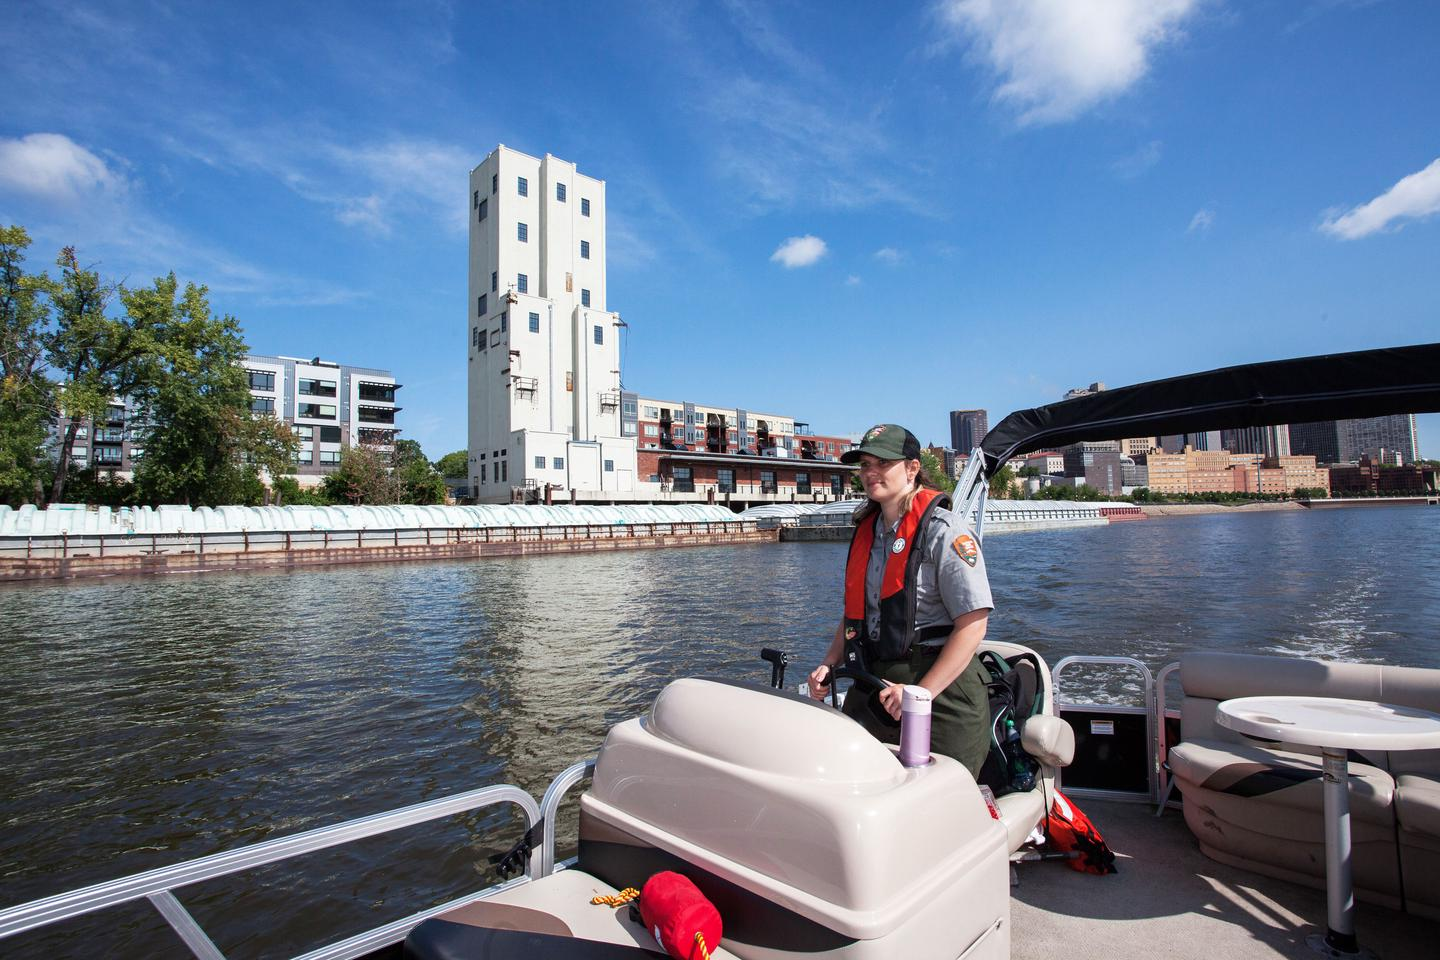 Boating on the Mississippi RiverOur park rangers often use boats, bikes, and hikes to help visitors understand the historical and cultural significance of our park.